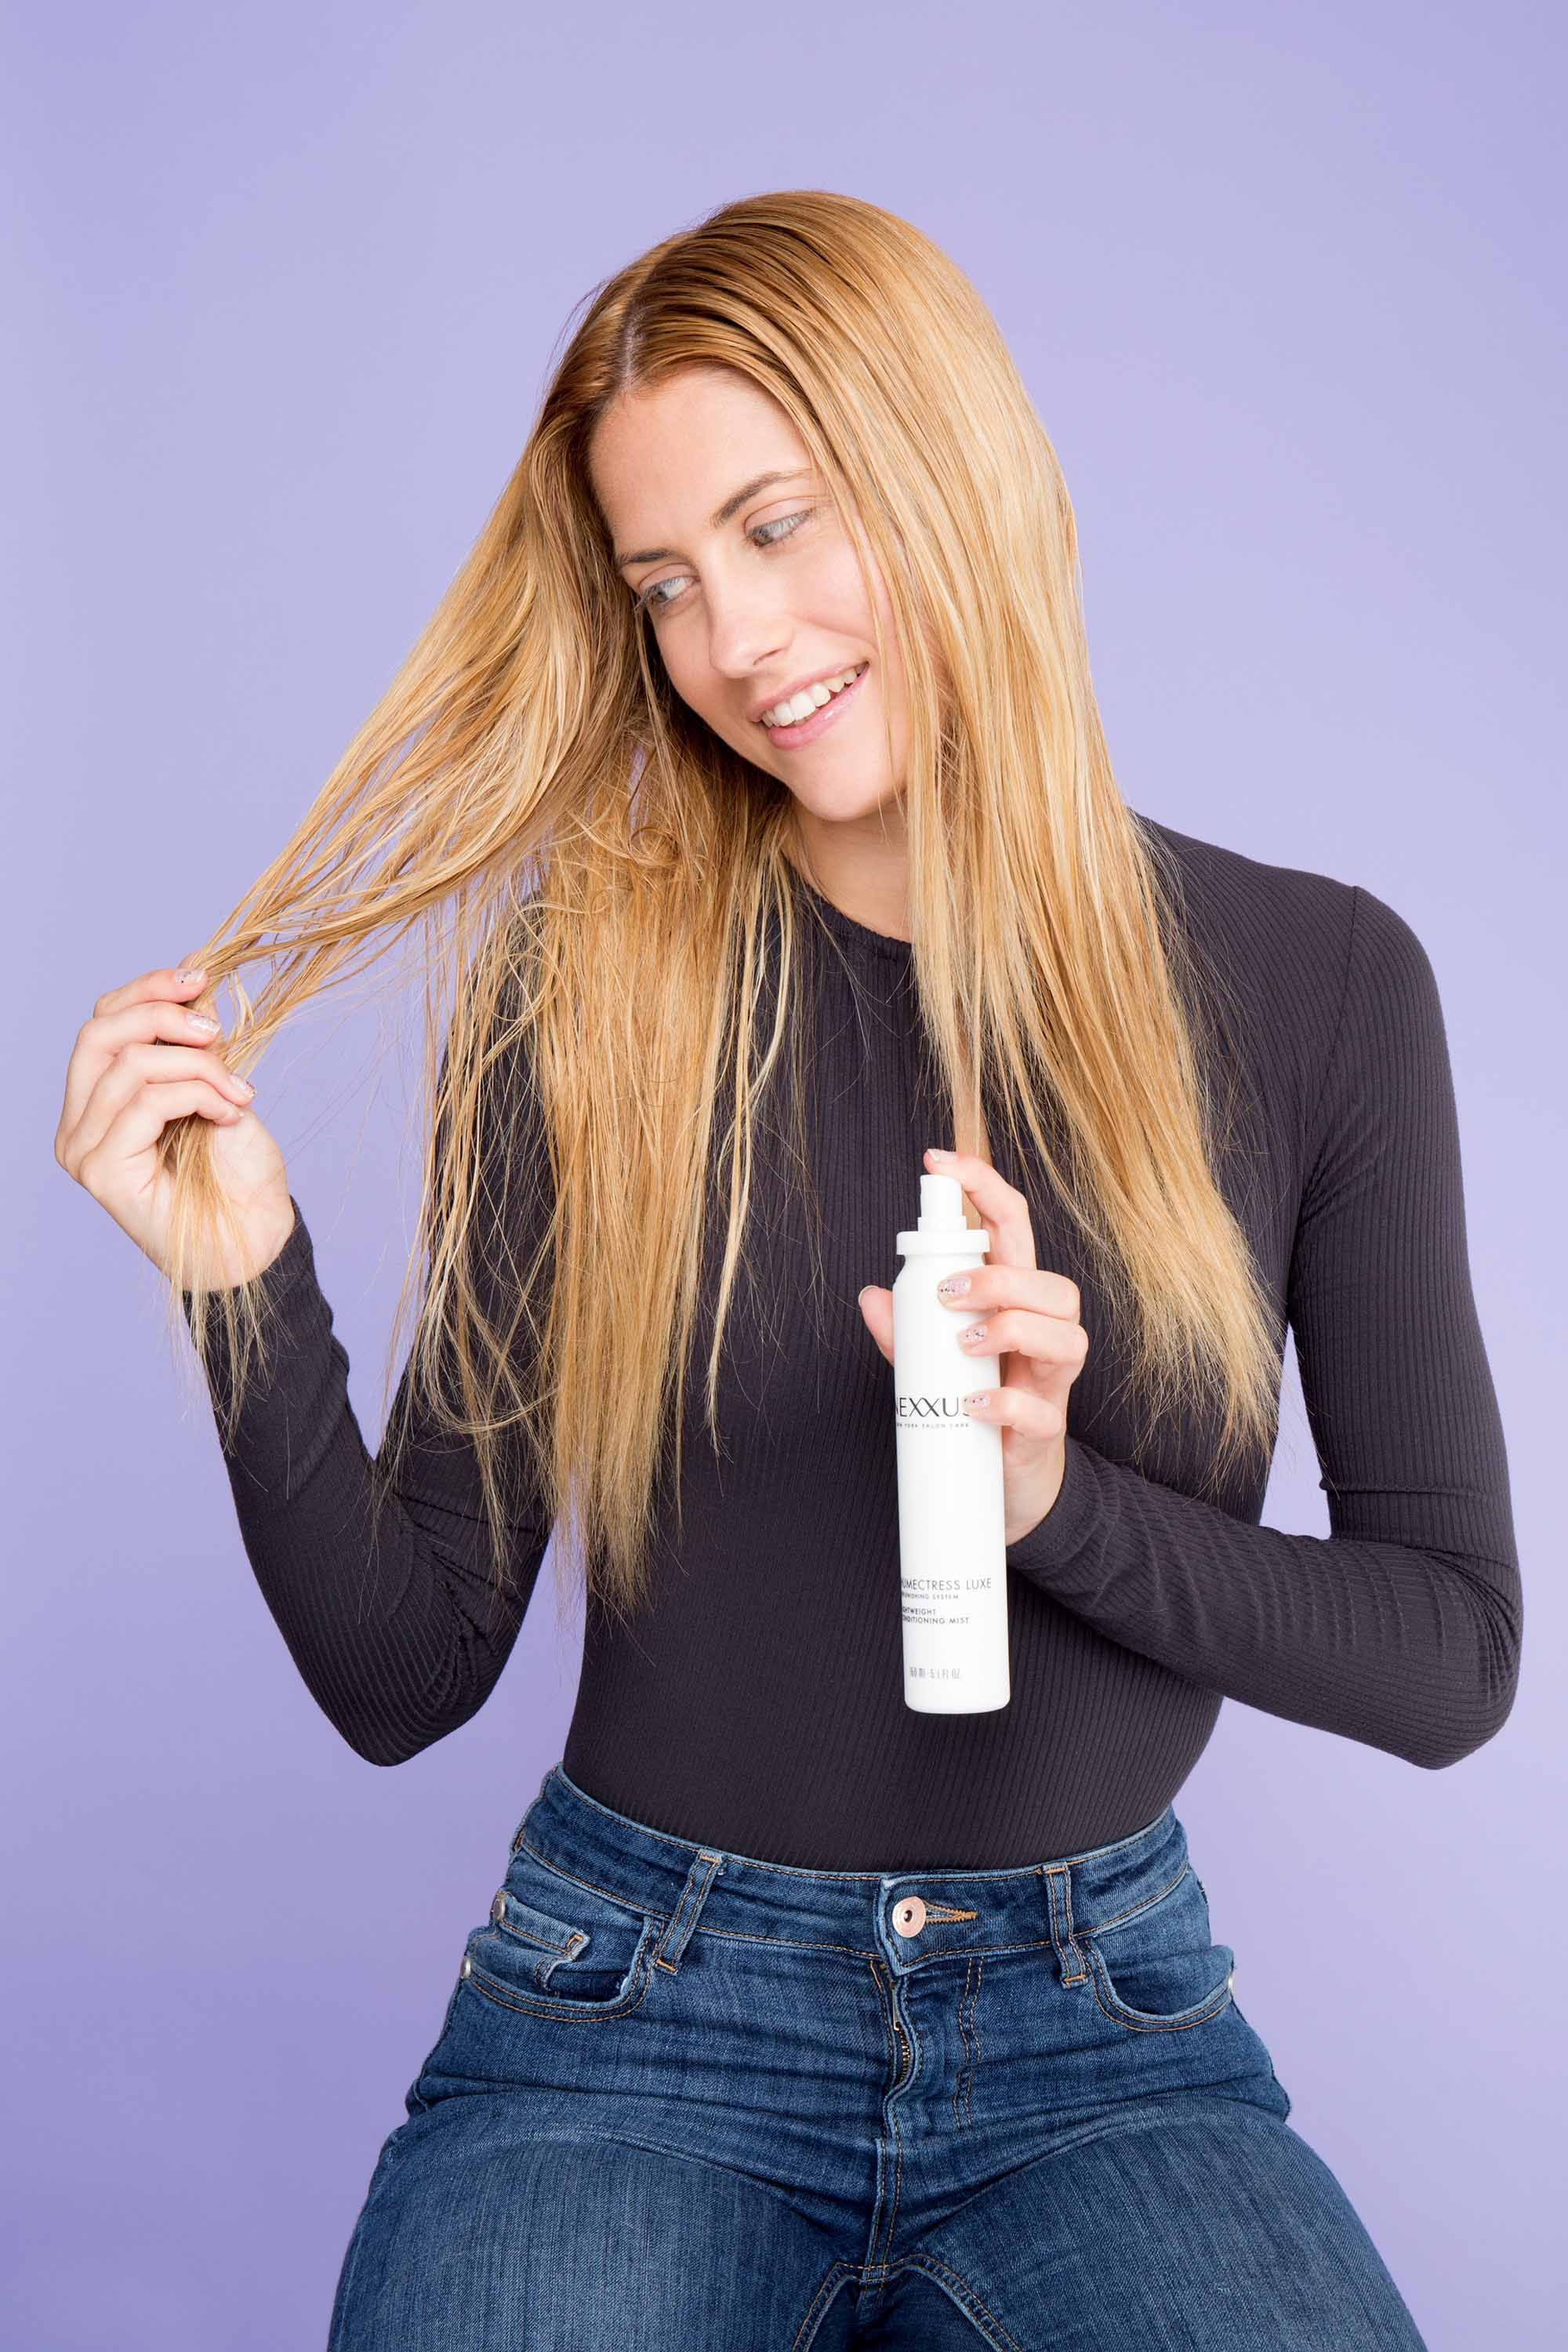 style frizzy hair: blonde woman applying leave in conditioner to hair